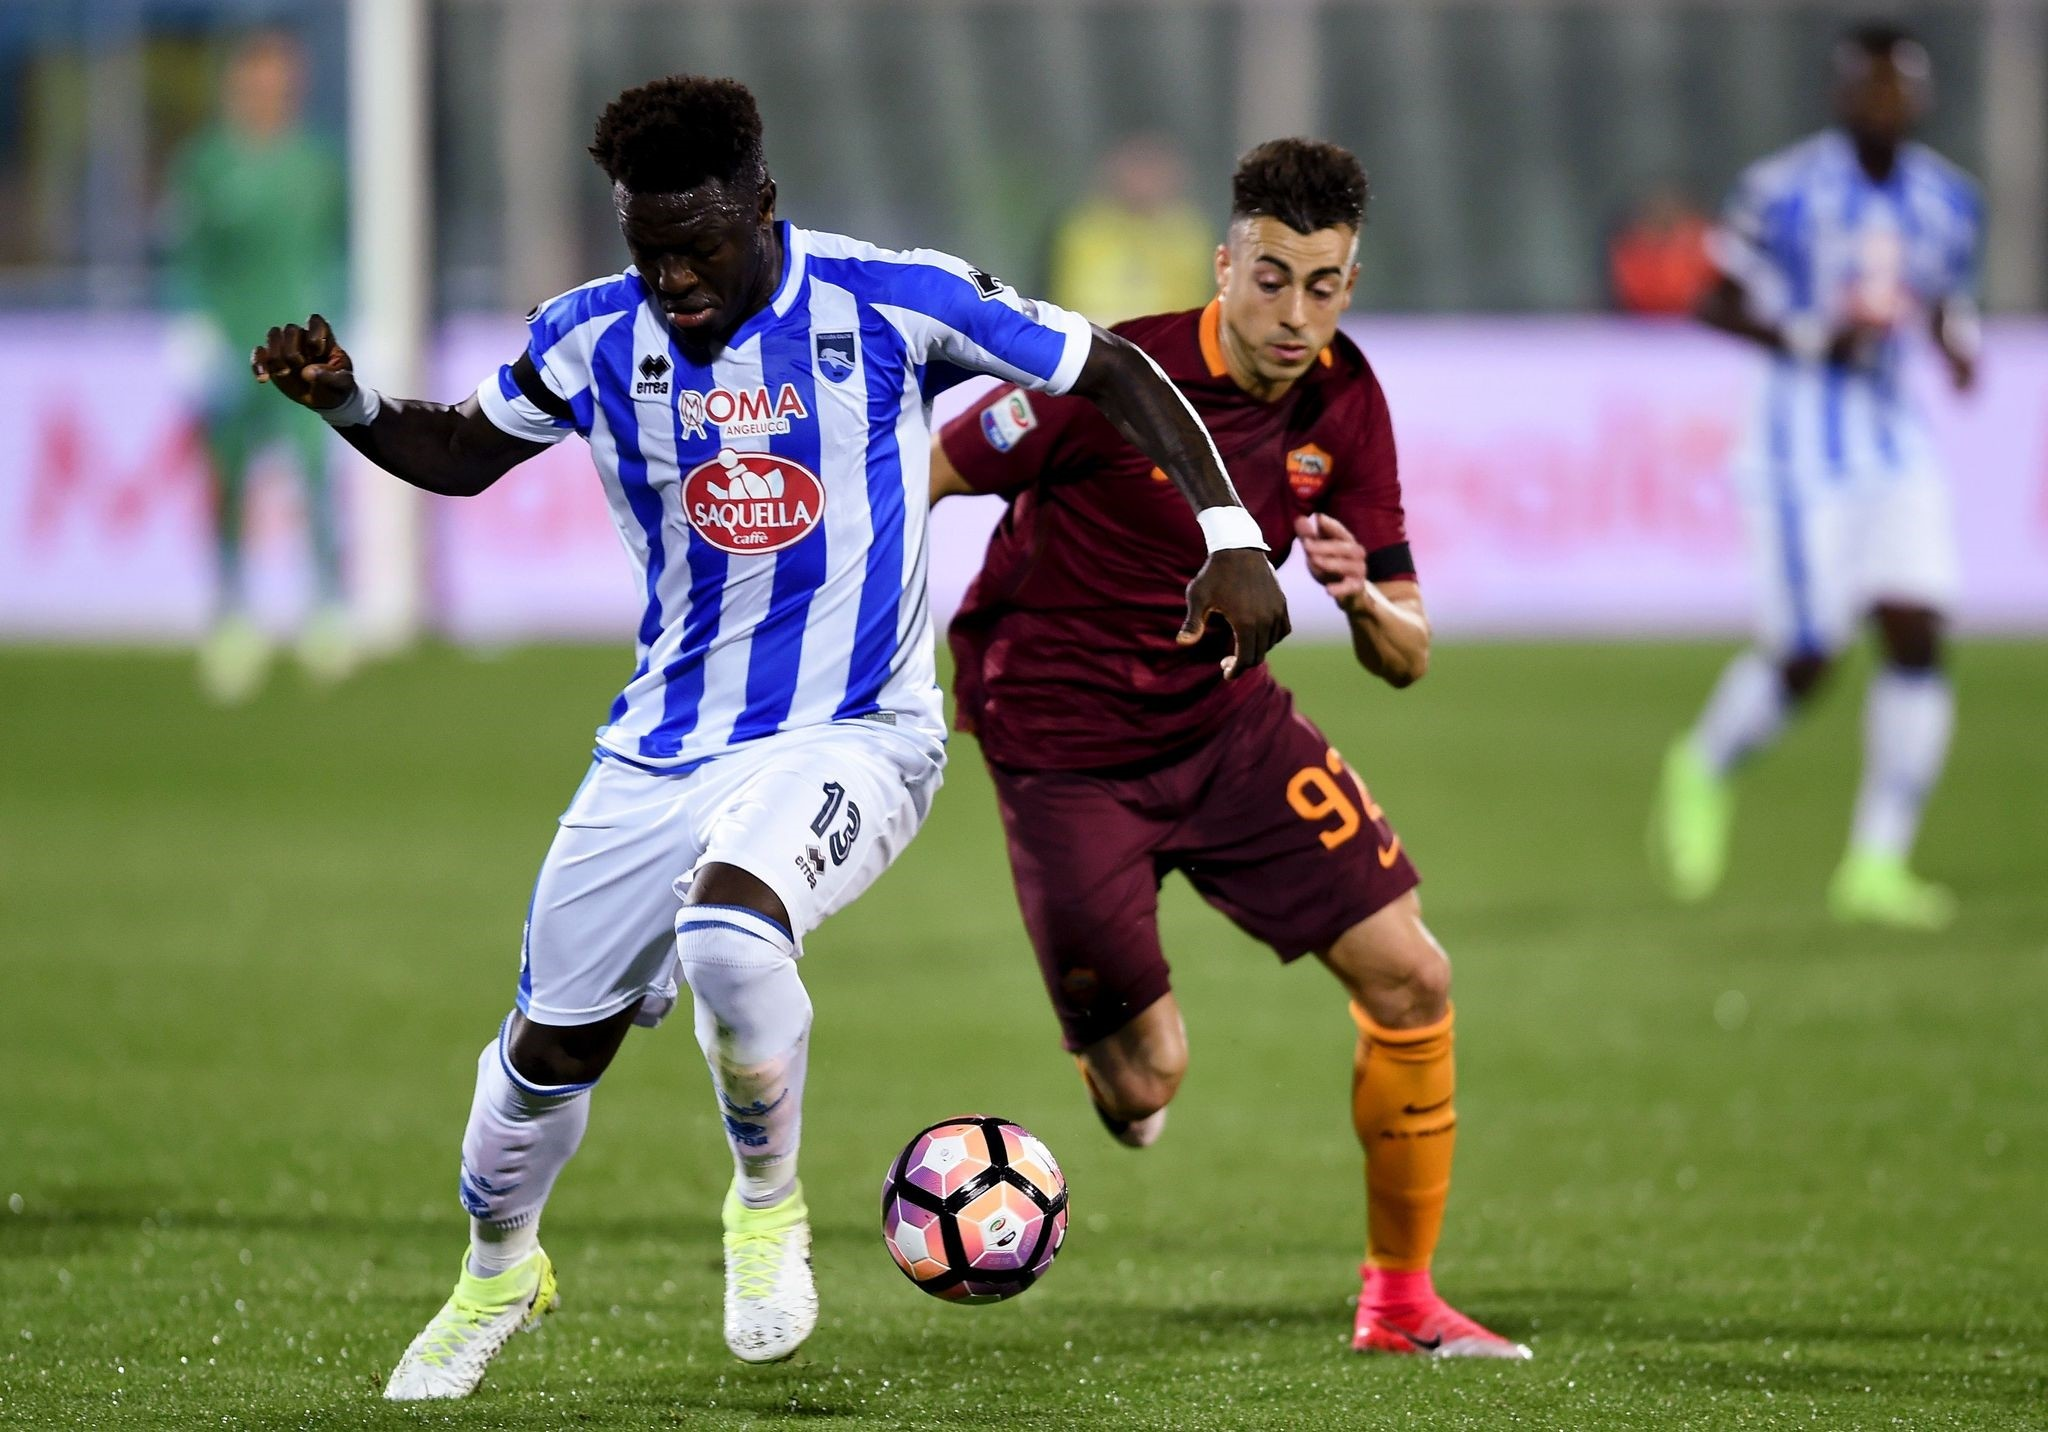 Romau2019s Italian forward Stephan El Shaarawy (R) and Pescara Ghanaian midfielder Sulley Muntari are in action during the Italian Serie A football match between Pescara and AS Roma.